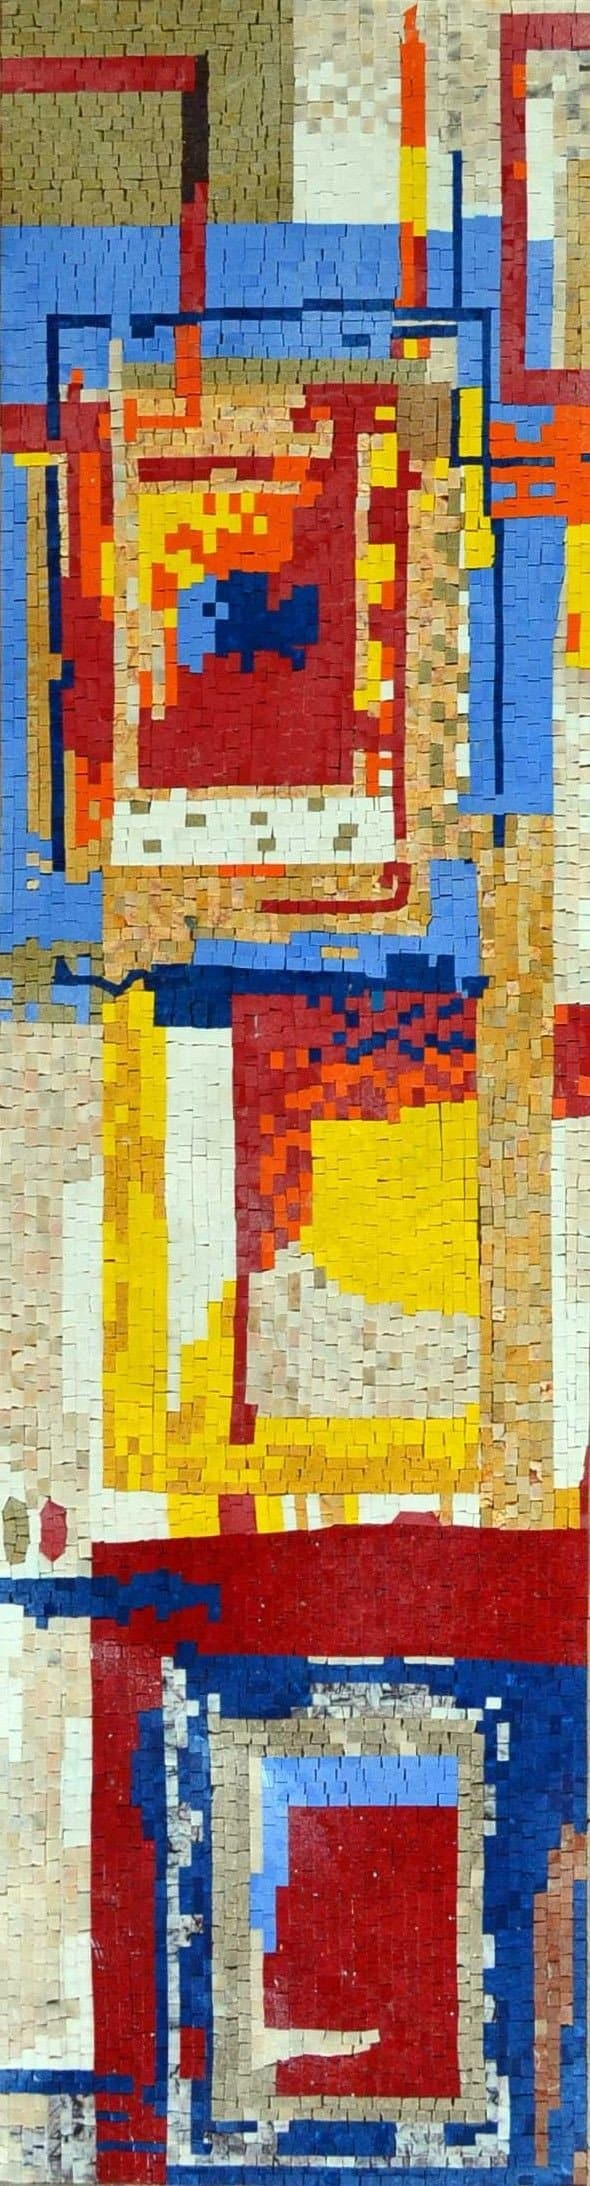 Modern Mosaic Art Colorful Abstract Patterns